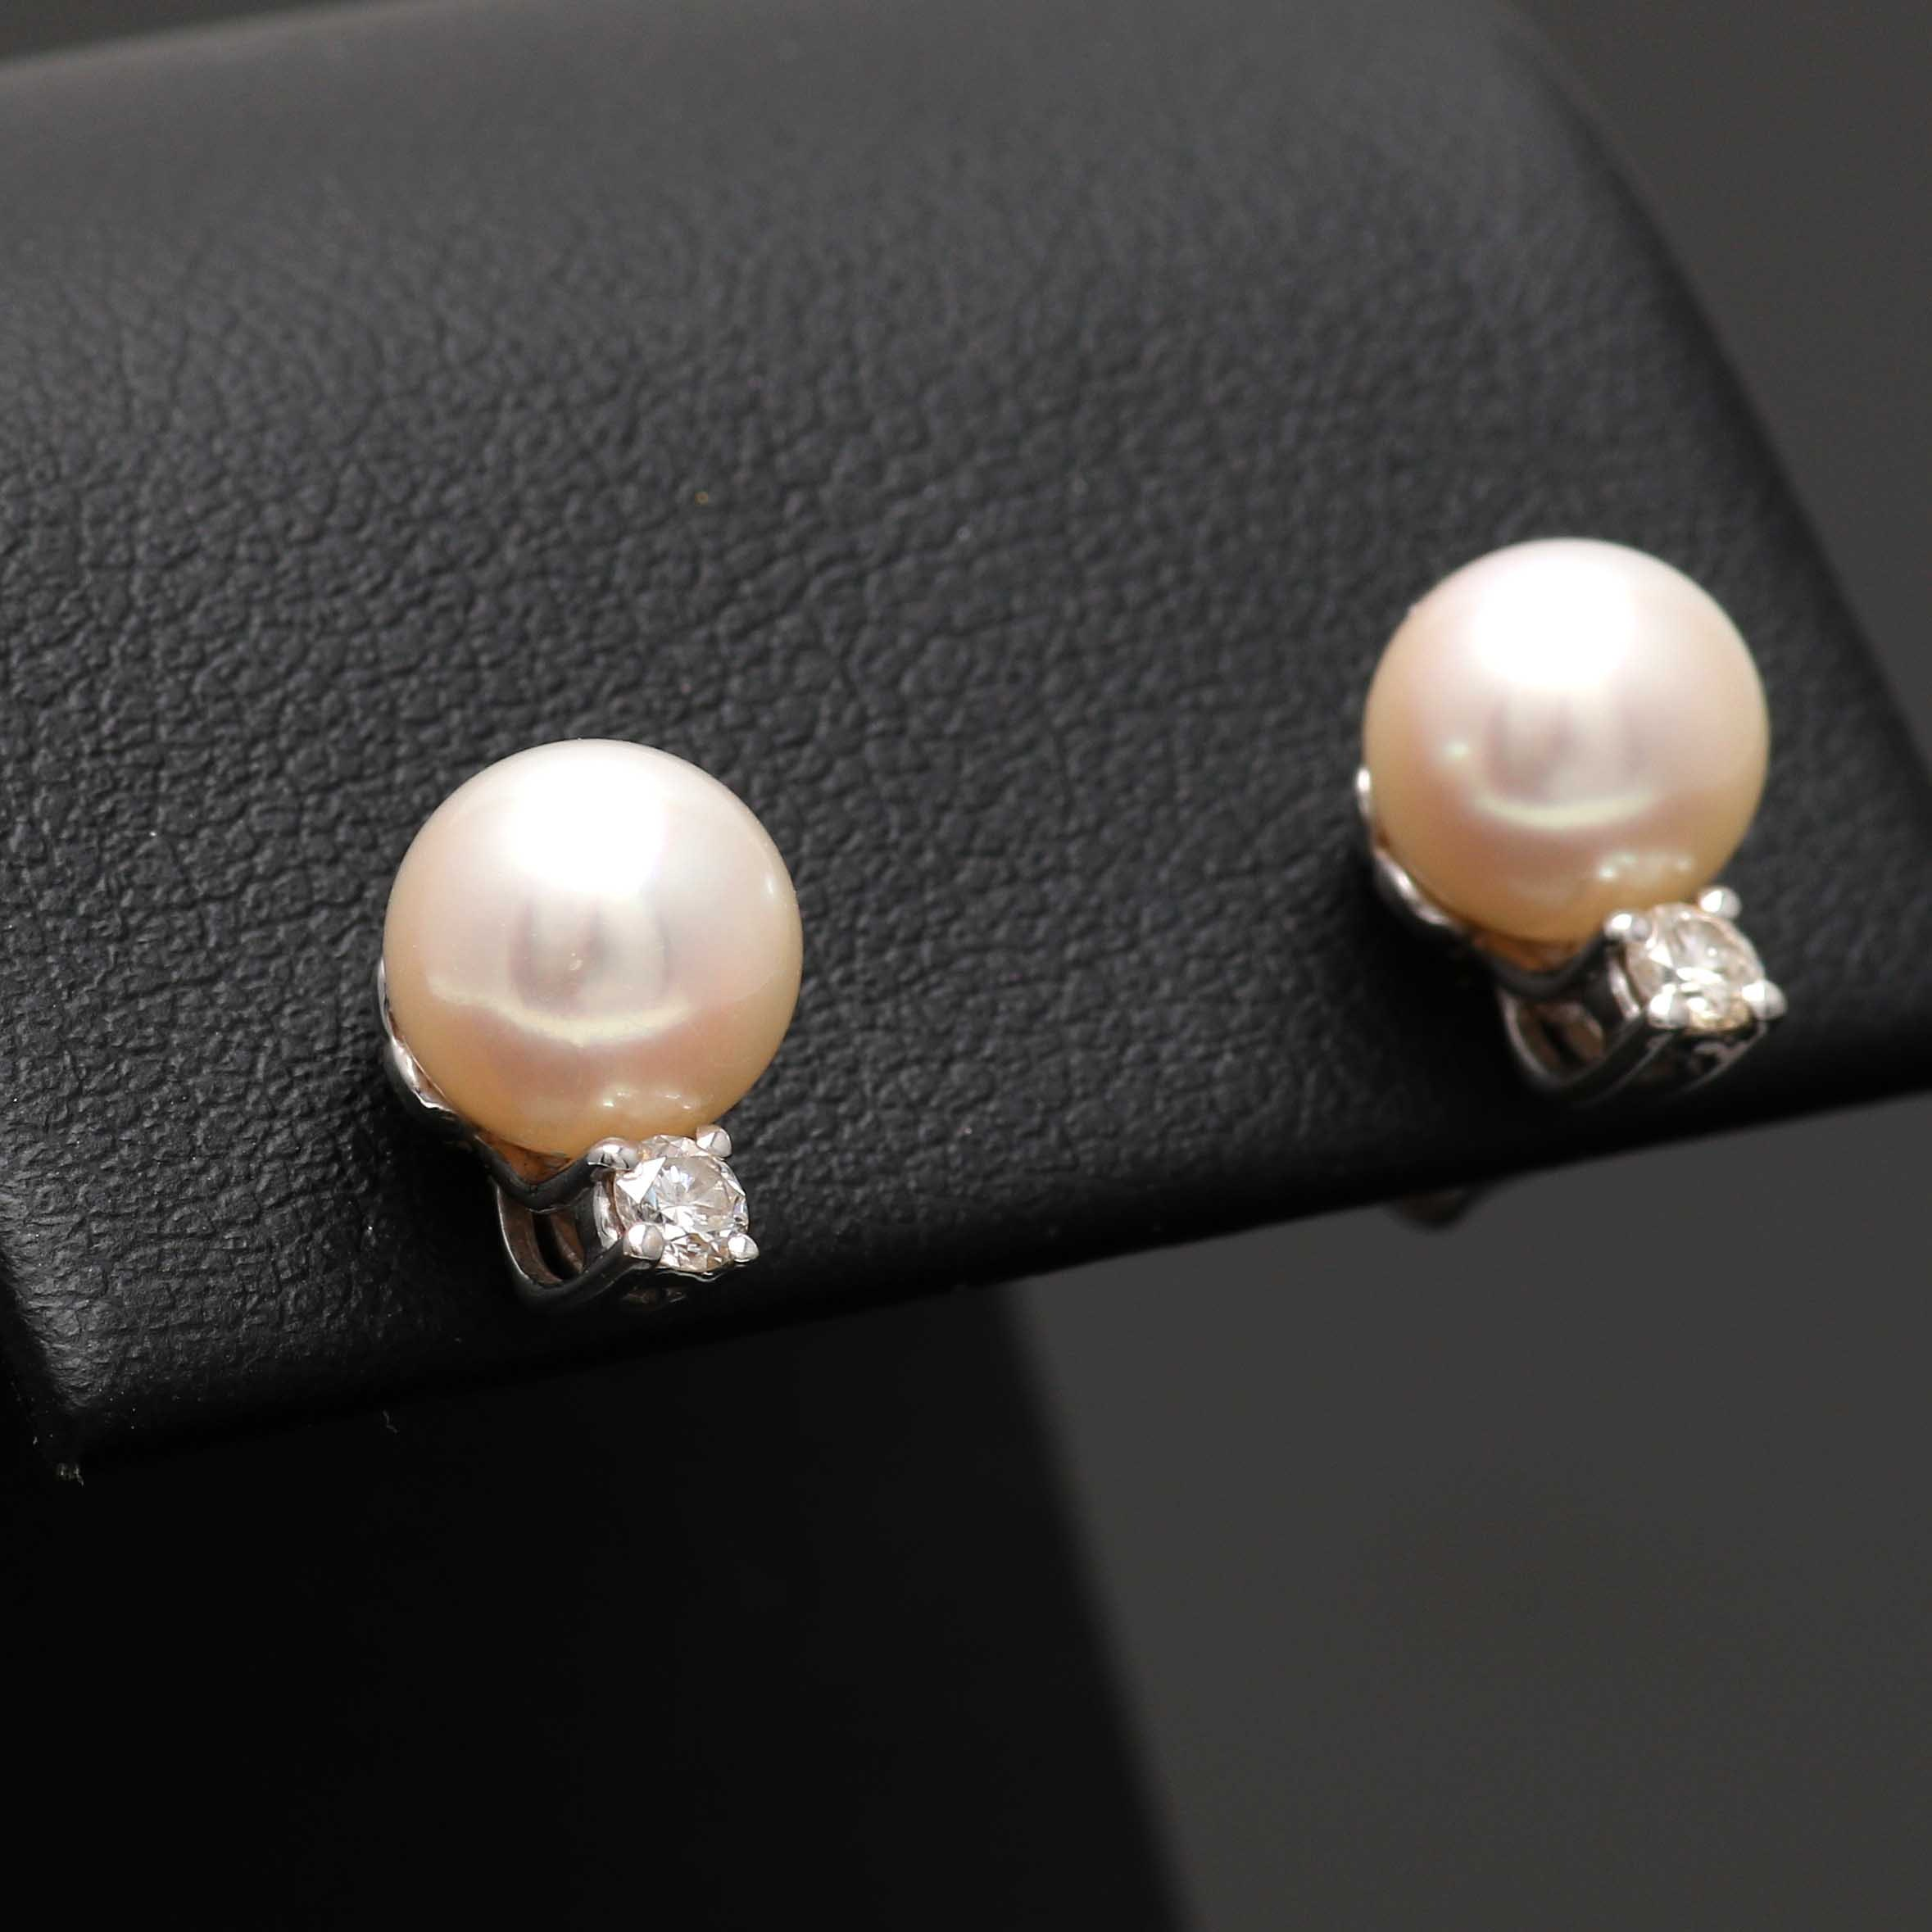 Tiffany & Co. 18K and 14K White Gold Cultured Pearl and Diamond Stud Earrings